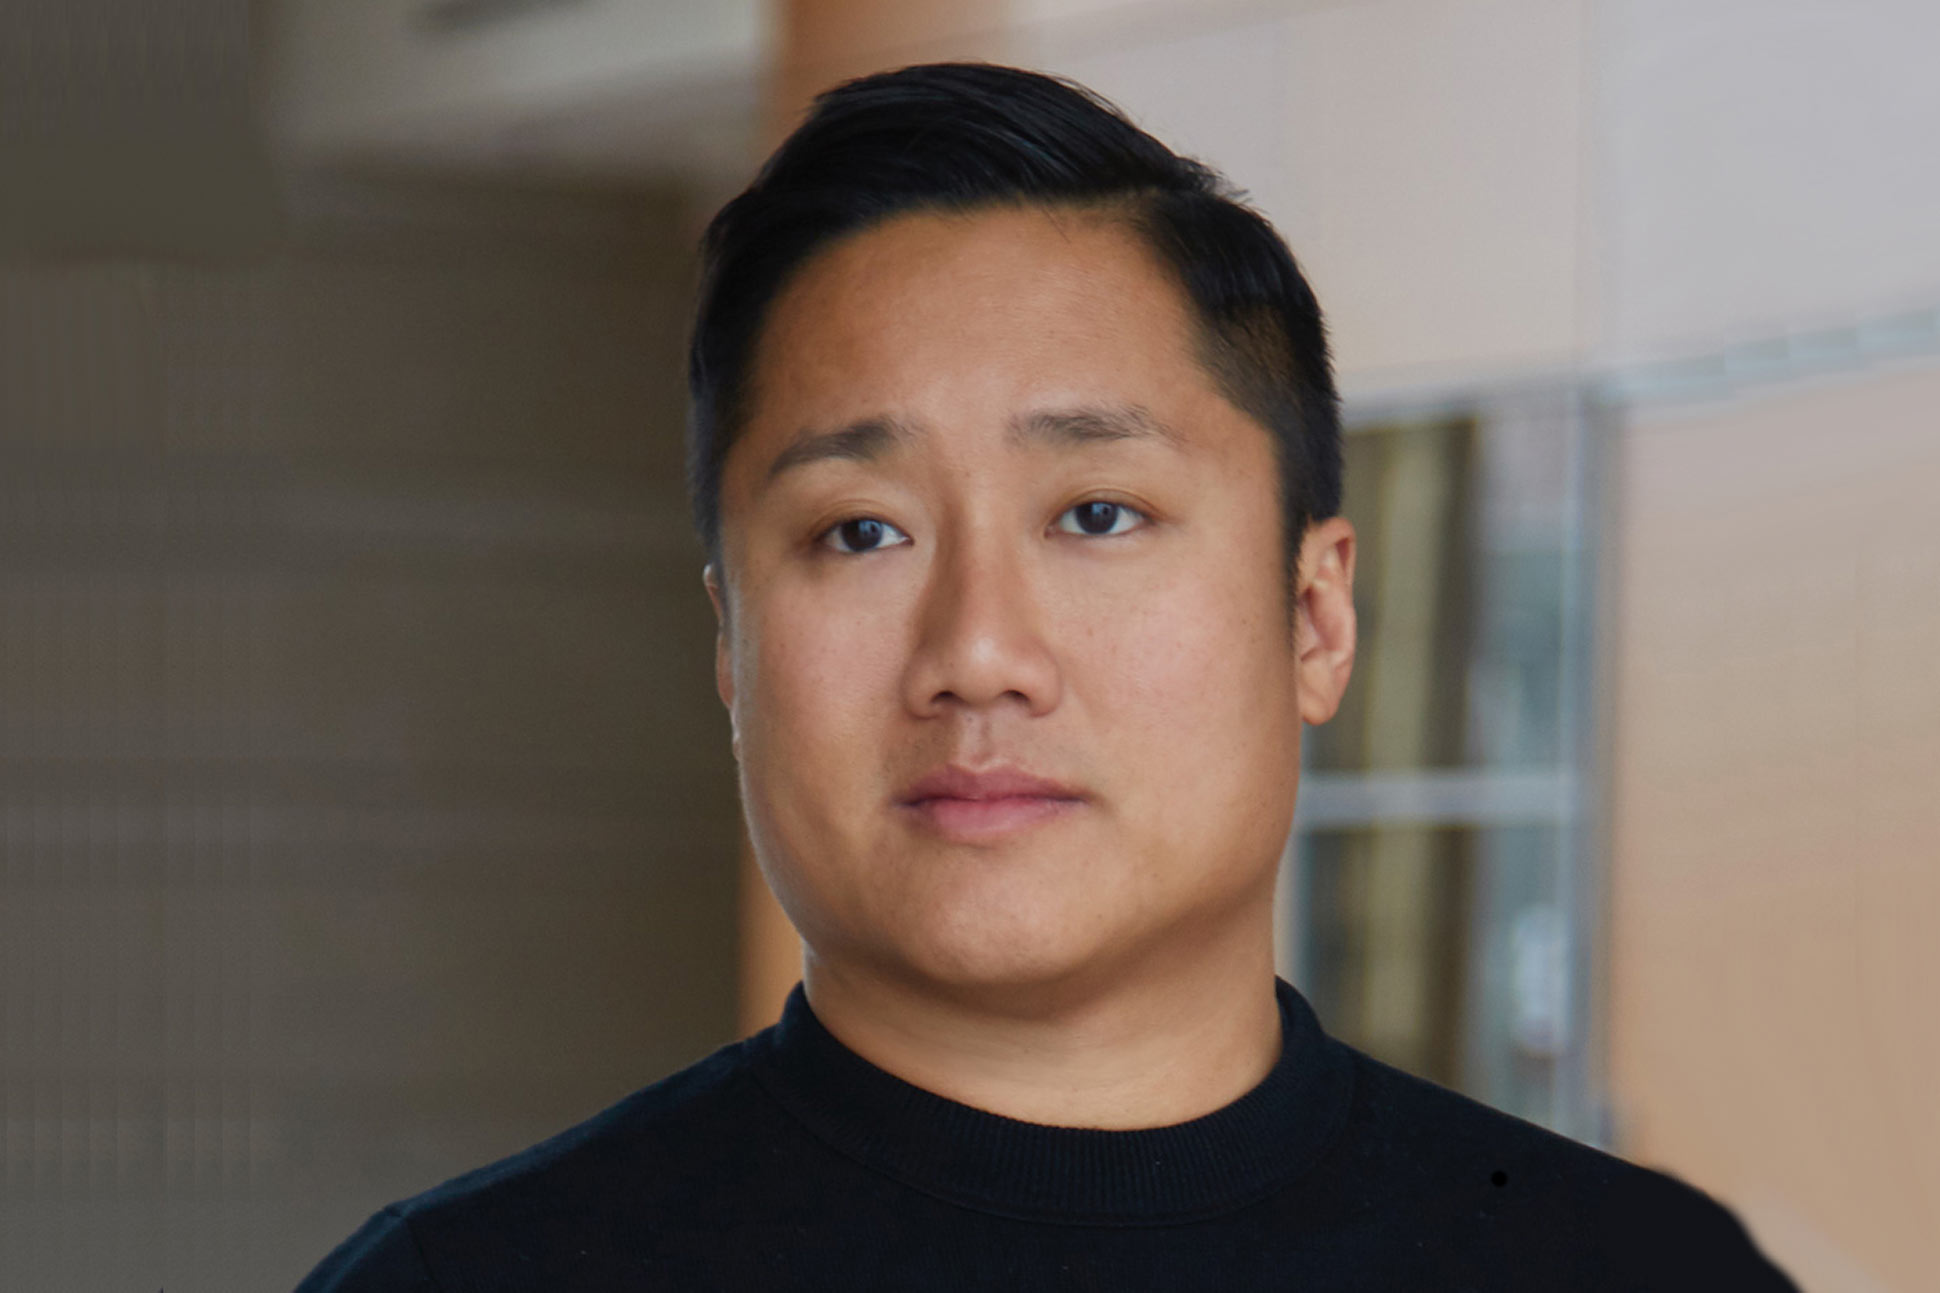 Uwern Jong, Editor in Chief and Founder, OutThere magazine